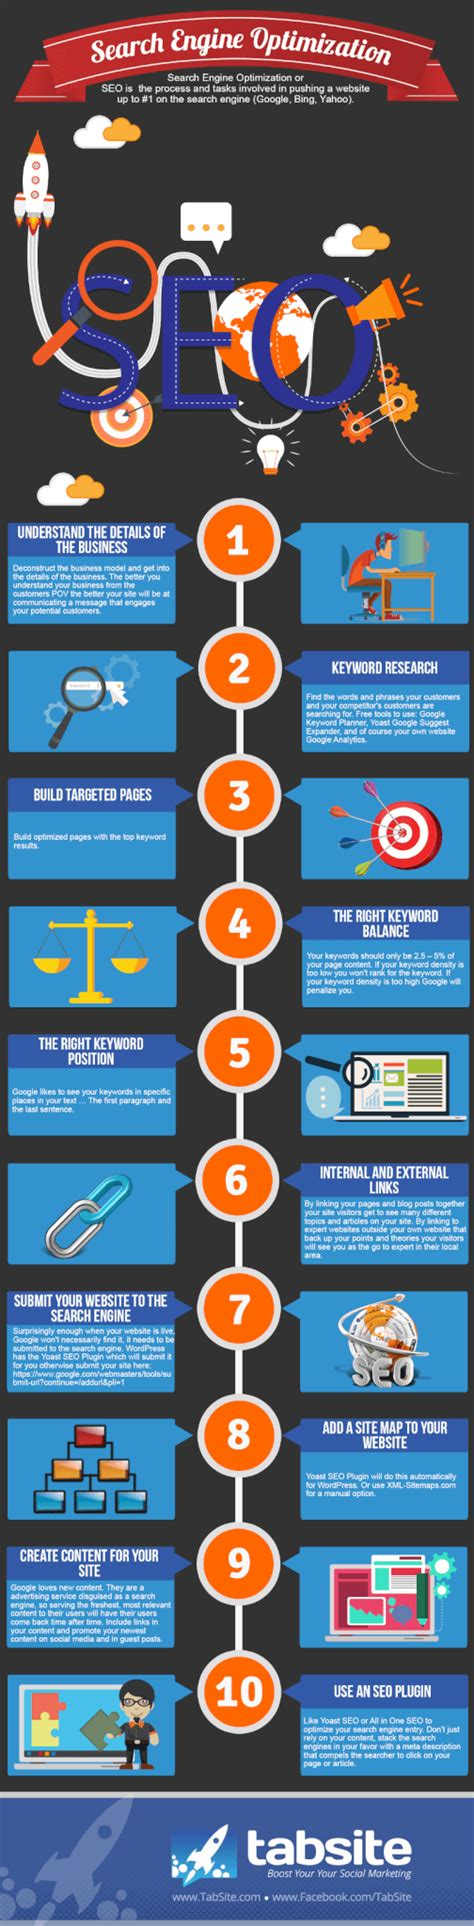 Search Engine Optimization List by Infographic Search Engine Optimization Checklist